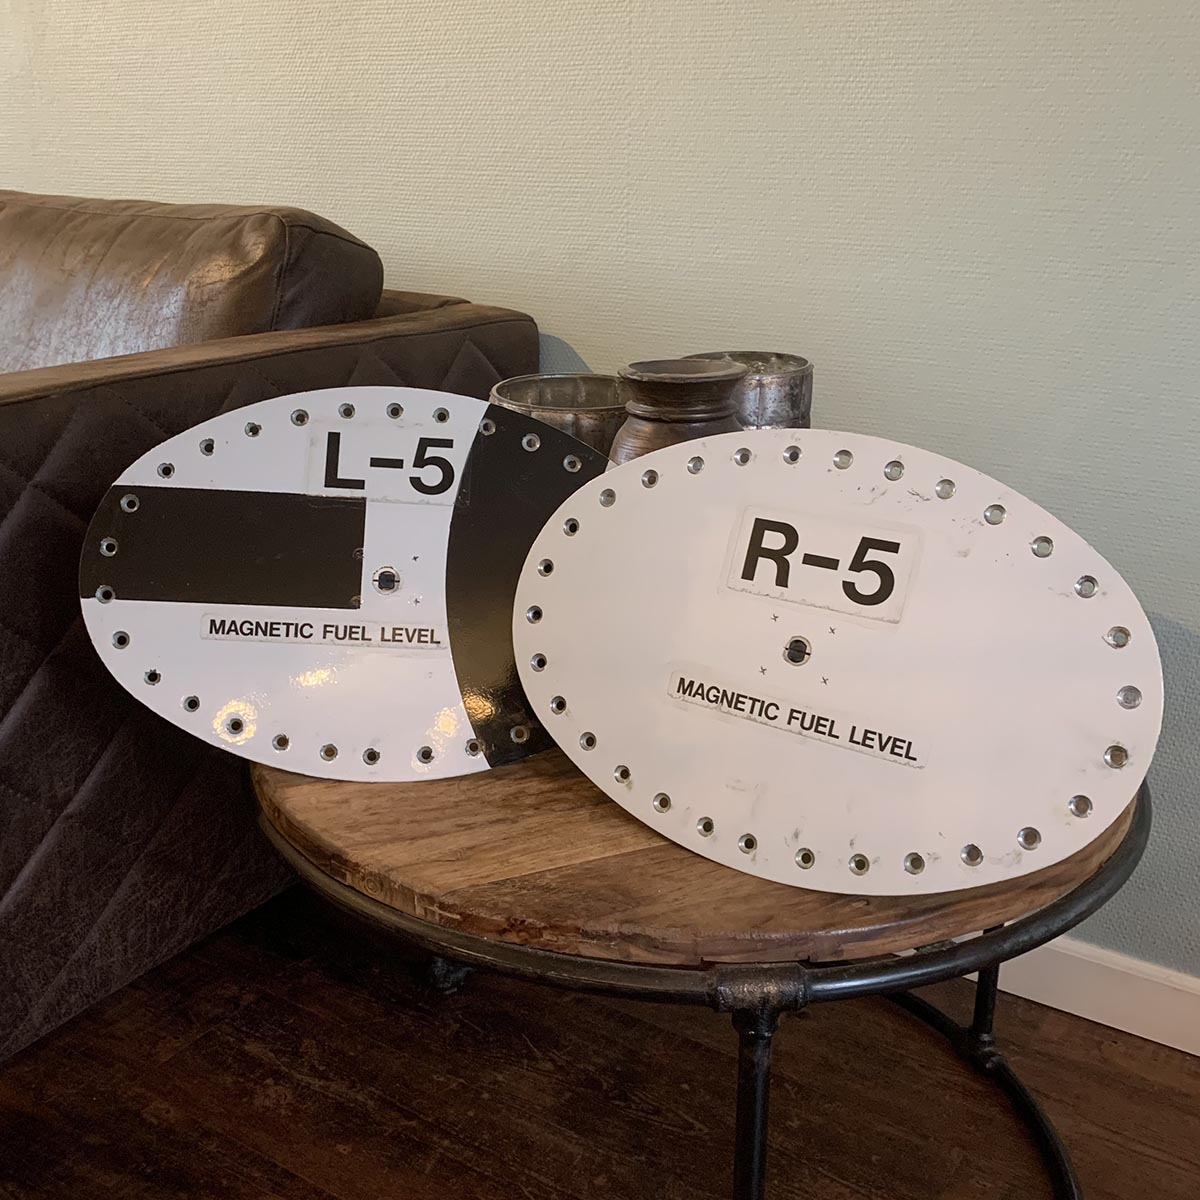 Two Airbus A319 fuel caps for sale.